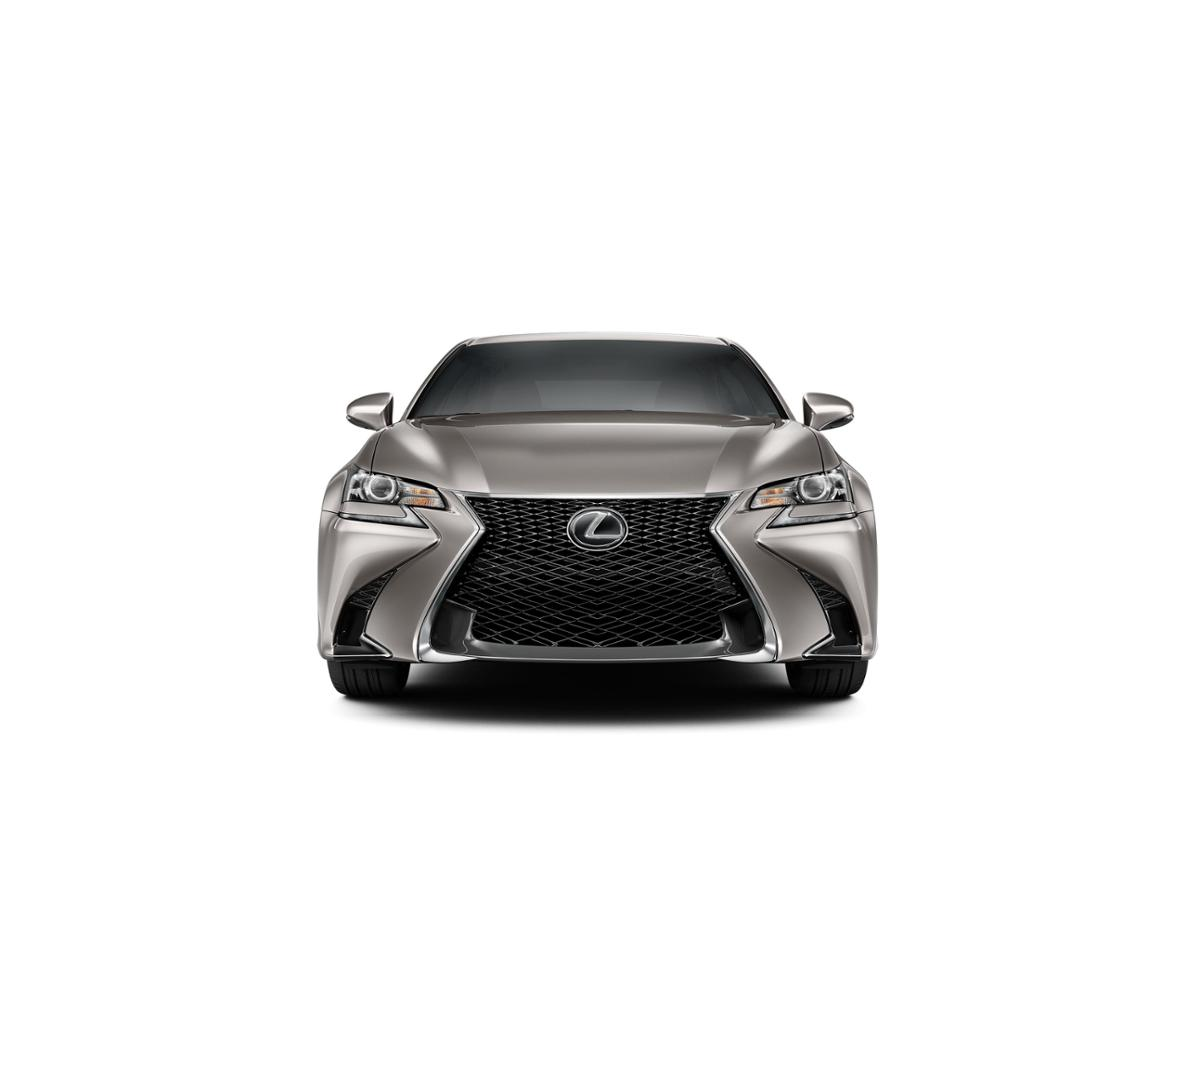 2018 lexus gs 350 f sport for sale at south county lexus in mission viejo orange county ca. Black Bedroom Furniture Sets. Home Design Ideas